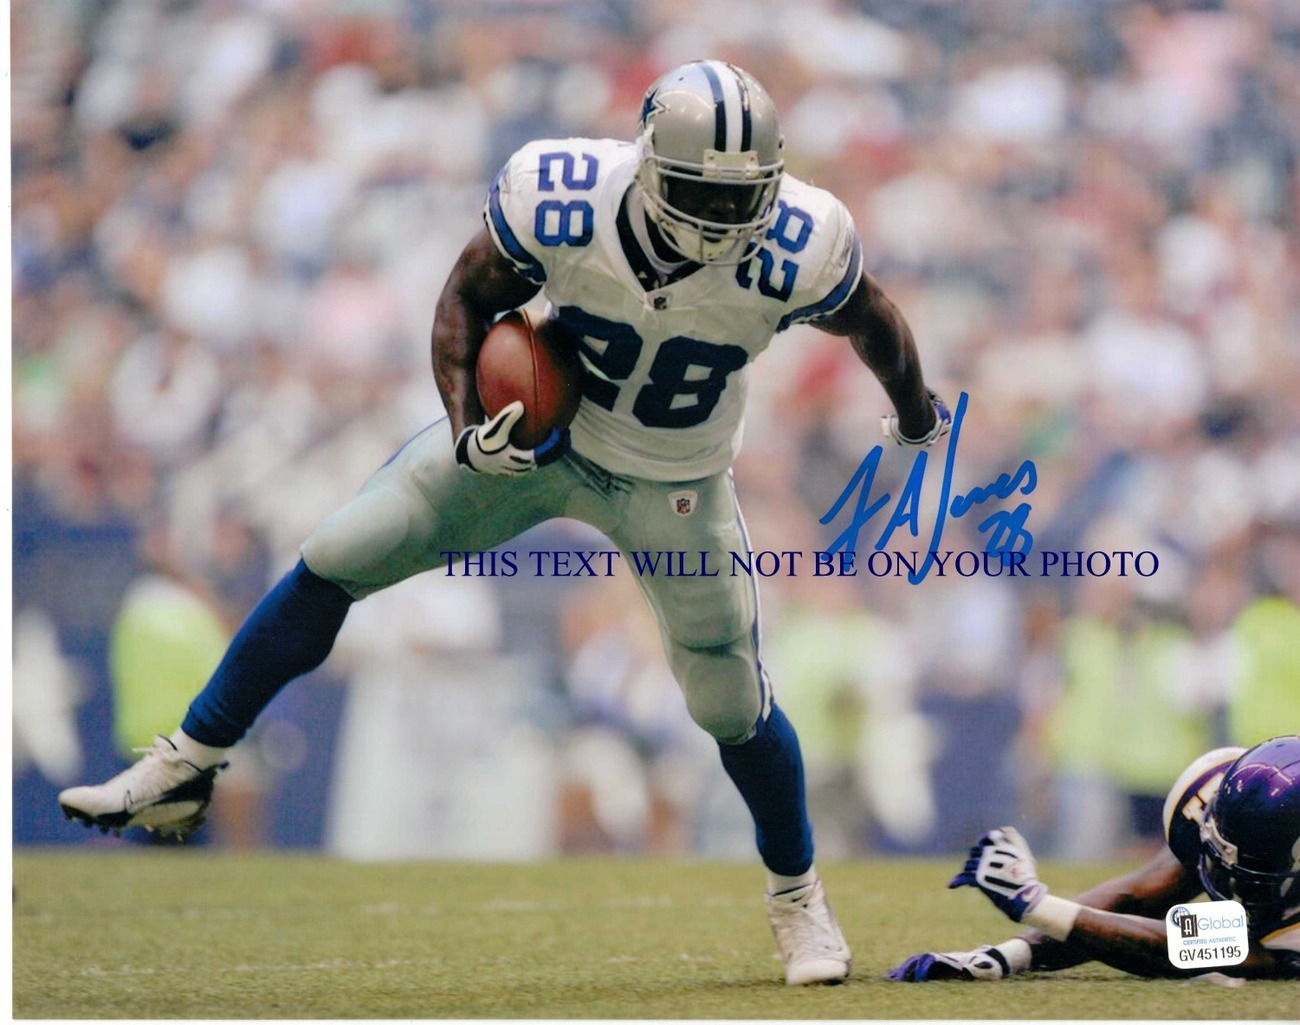 FELIX JONES AUTOGRAPHED SIGNED AUTO 8x10 RP PHOTO DALLAS COWBOYS